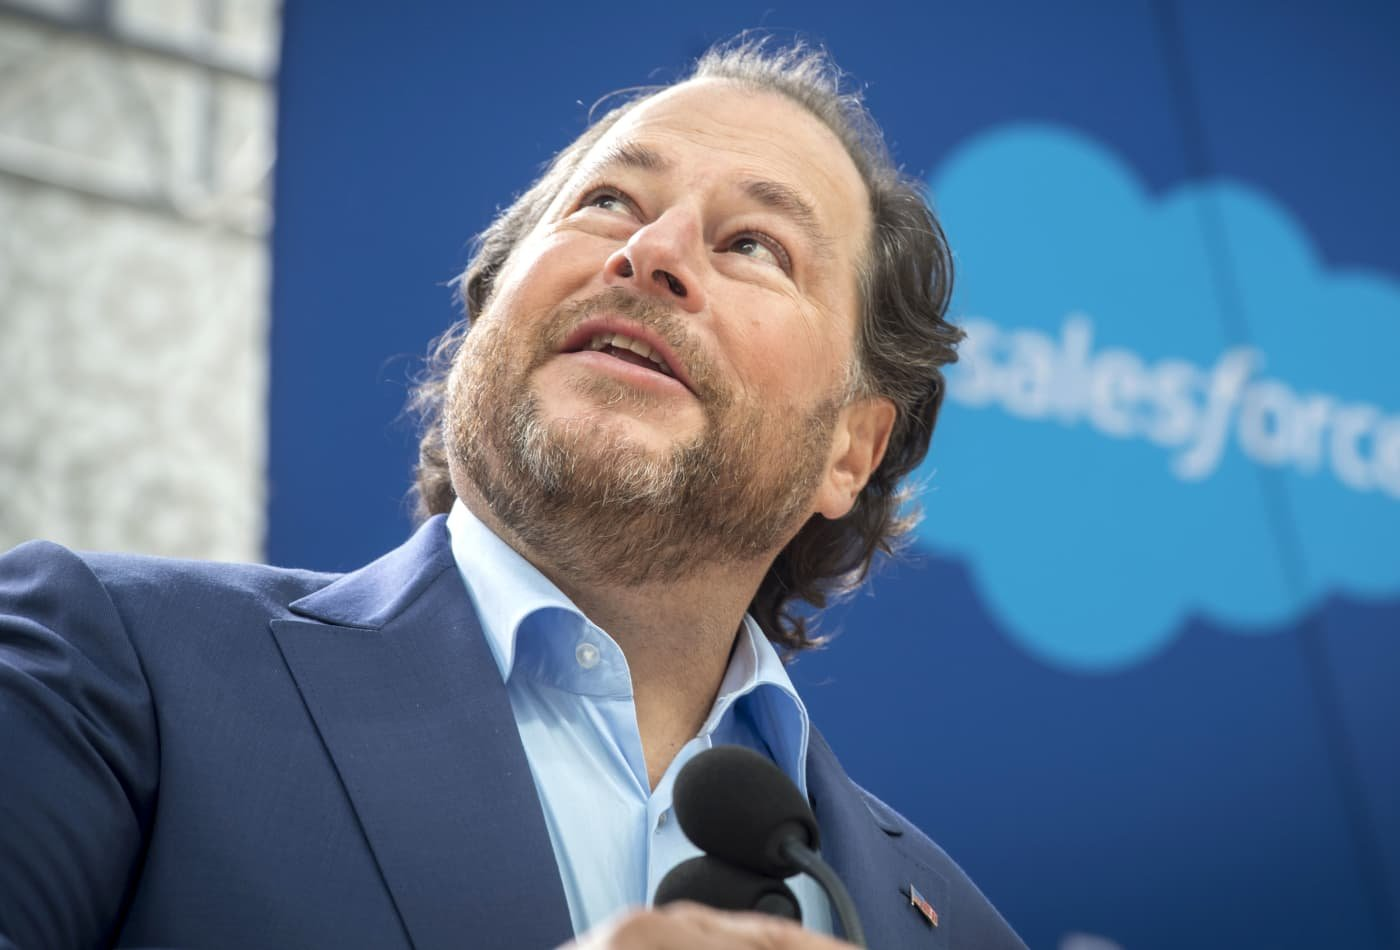 Salesforce CEO Marc Benioff expects half or more of employees to work from home after the pandemic: 'The past is gone'